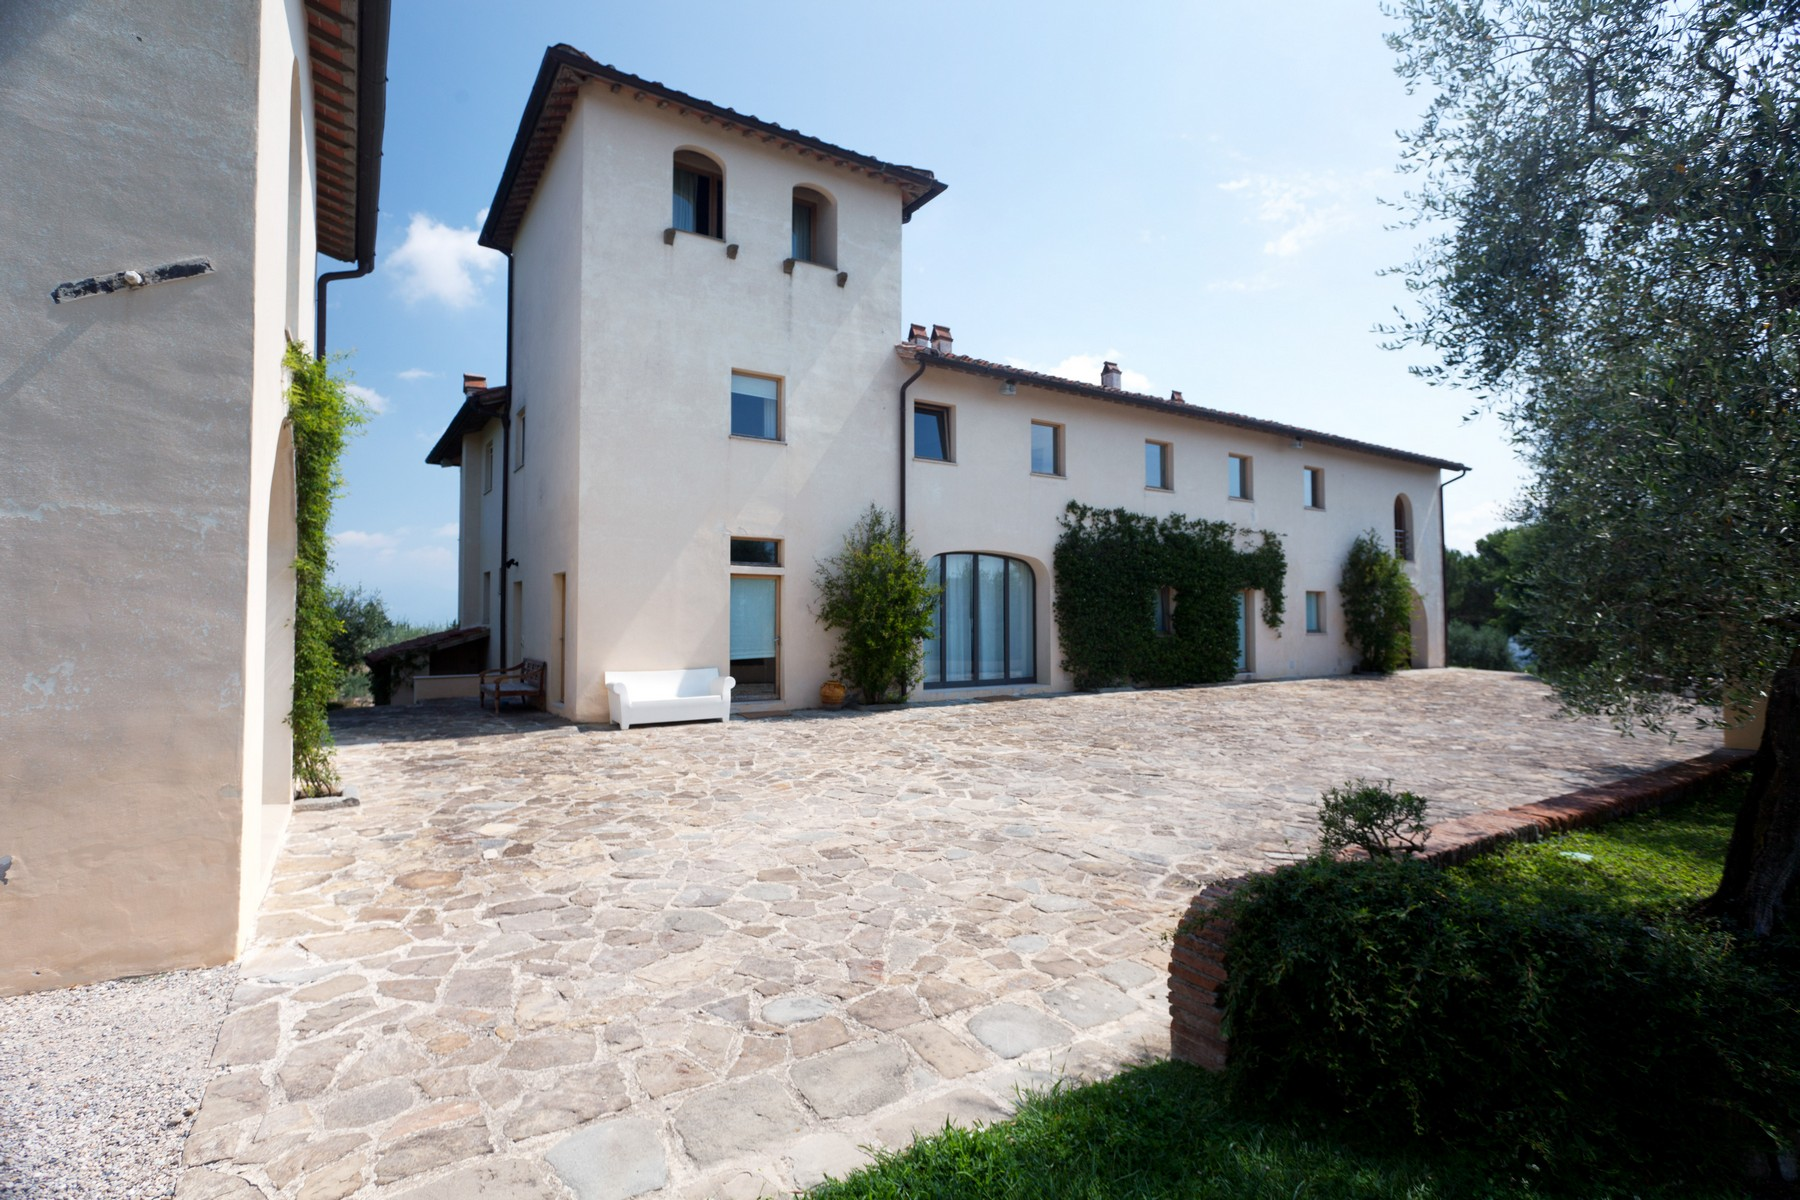 Single Family Home for Sale at Sophisticated Design Villa near Florence Via San Romolo Firenze, 50055 Italy